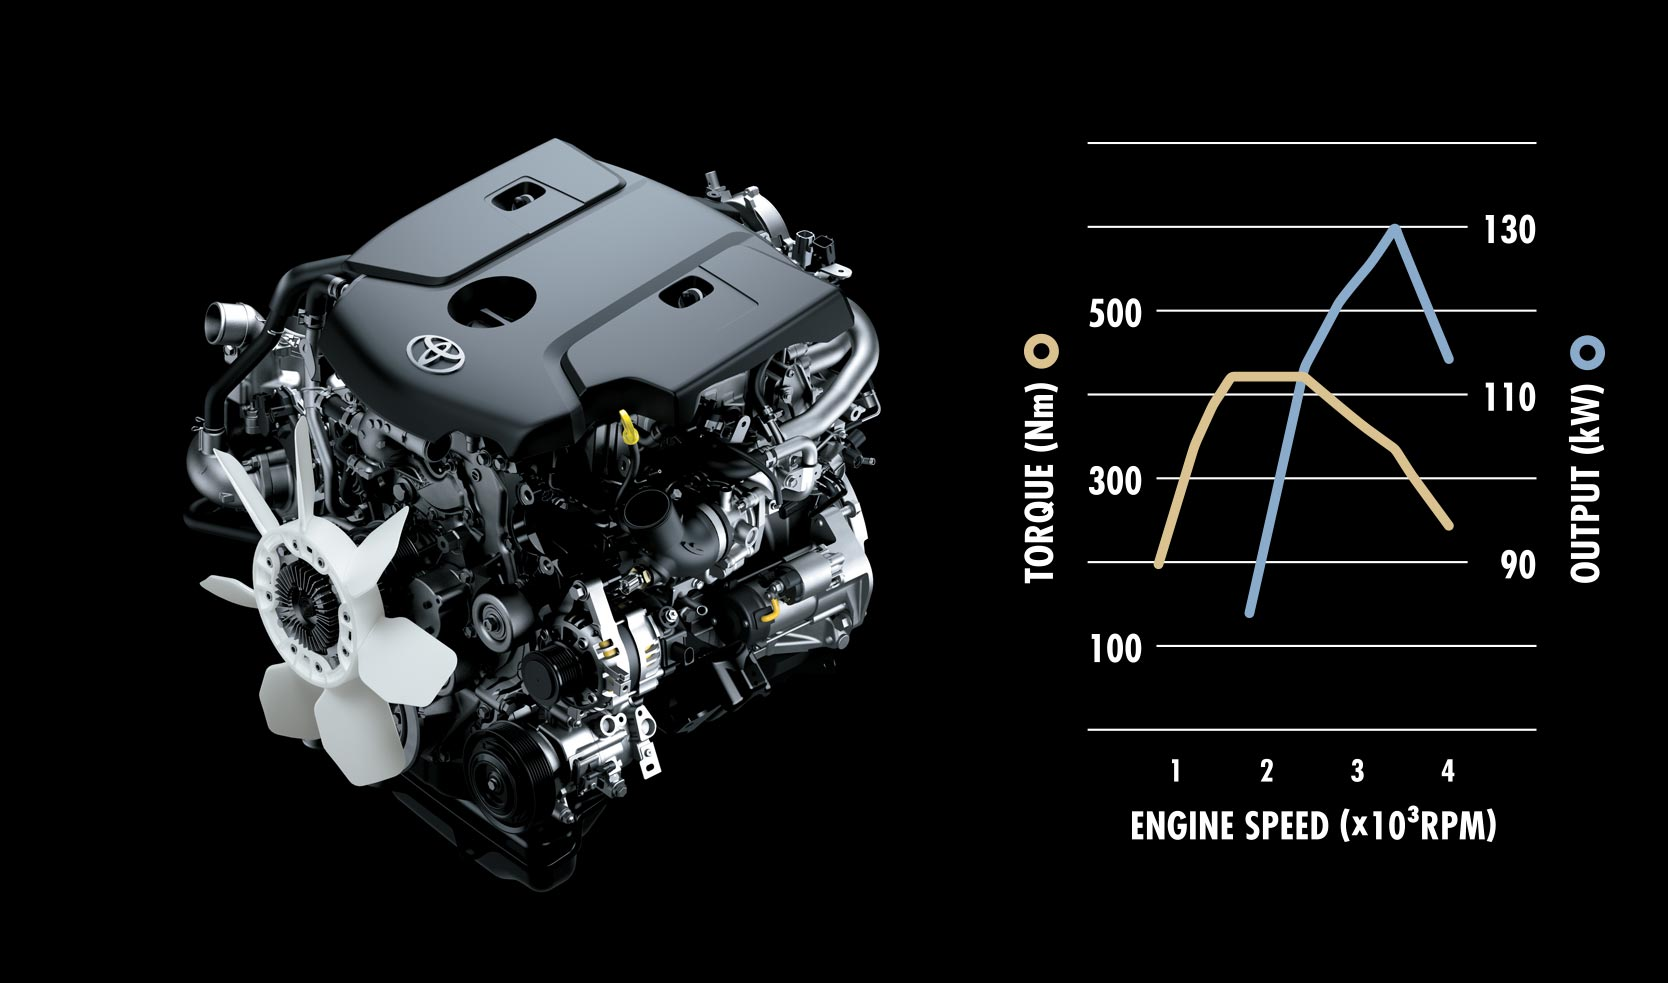 hight resolution of the brand new 2 8 liter 1gd ftv is the next generation in ultra high efficiency turbo diesel engines from toyota the 1gd ftv engines introduces toyota s